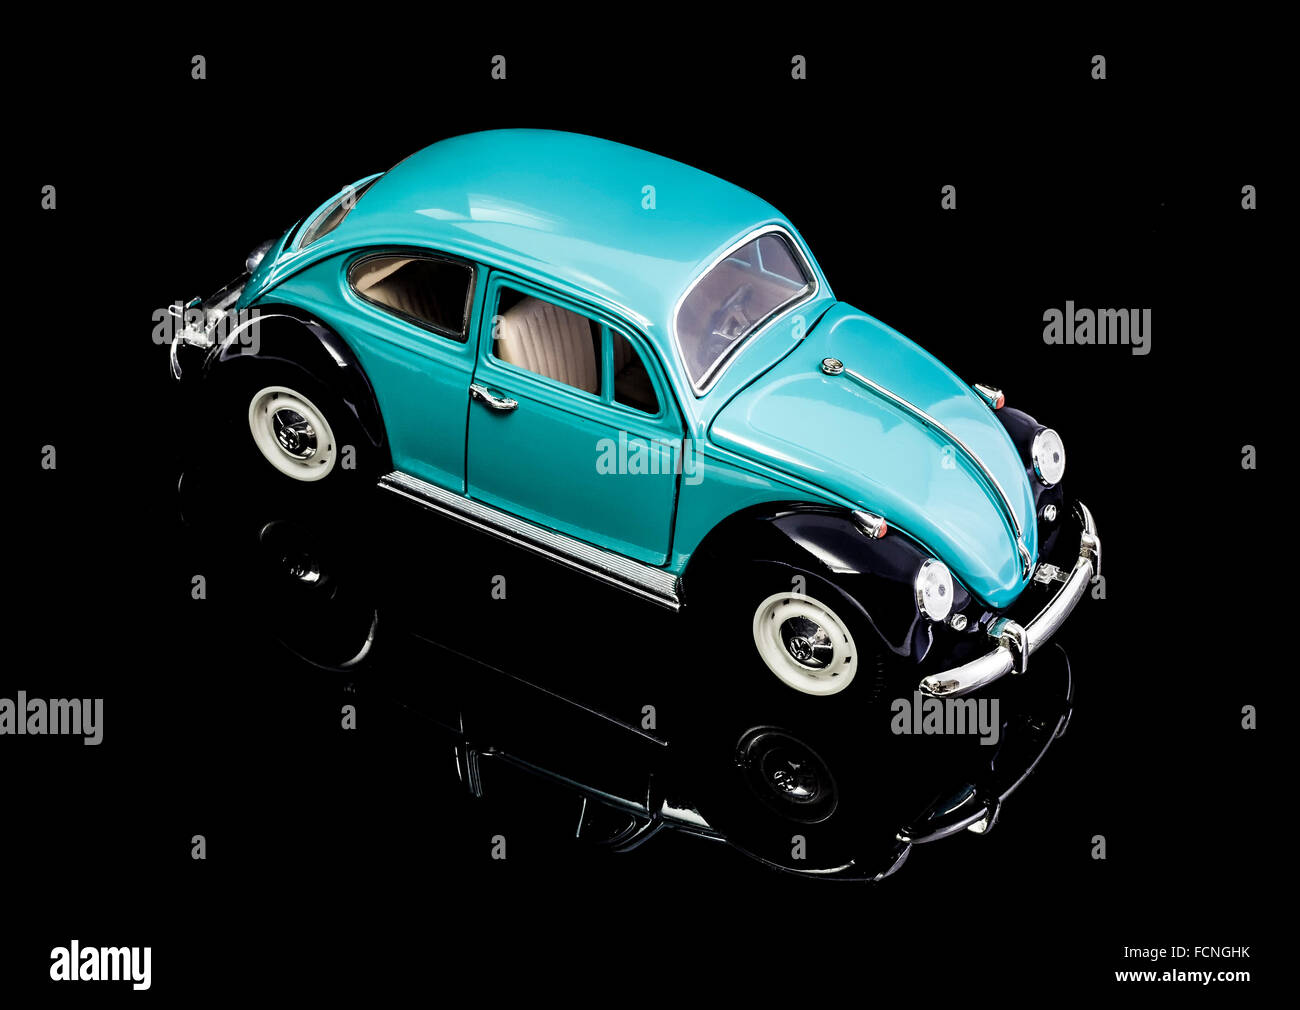 VW Beetle in Blue Die cast model on a white background. - Stock Image